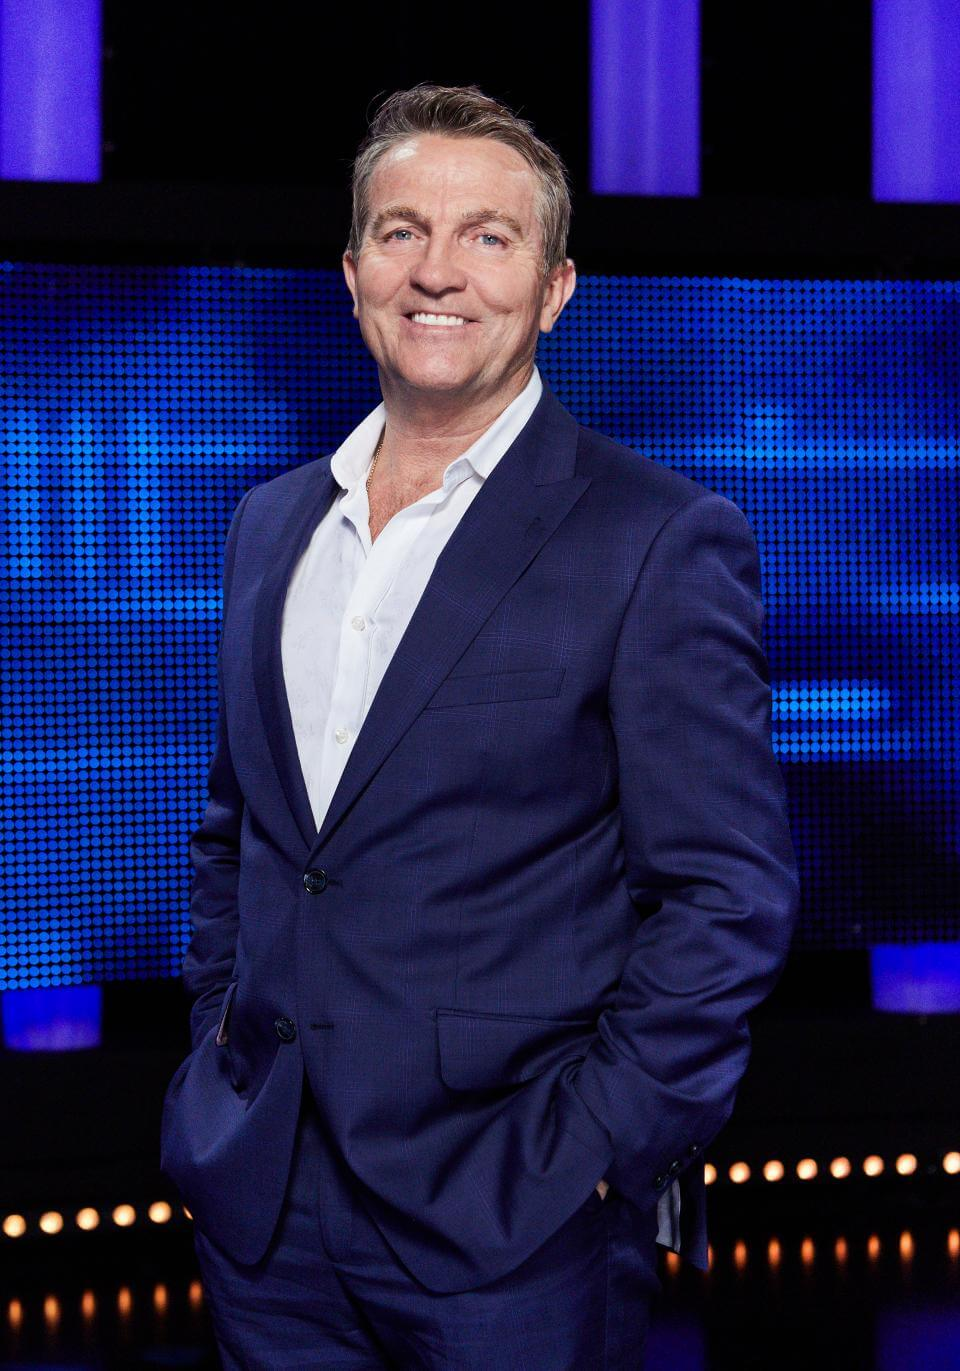 Bradley Walsh Becomes Highest Paid TV Star With £5 Million A Year Earnings